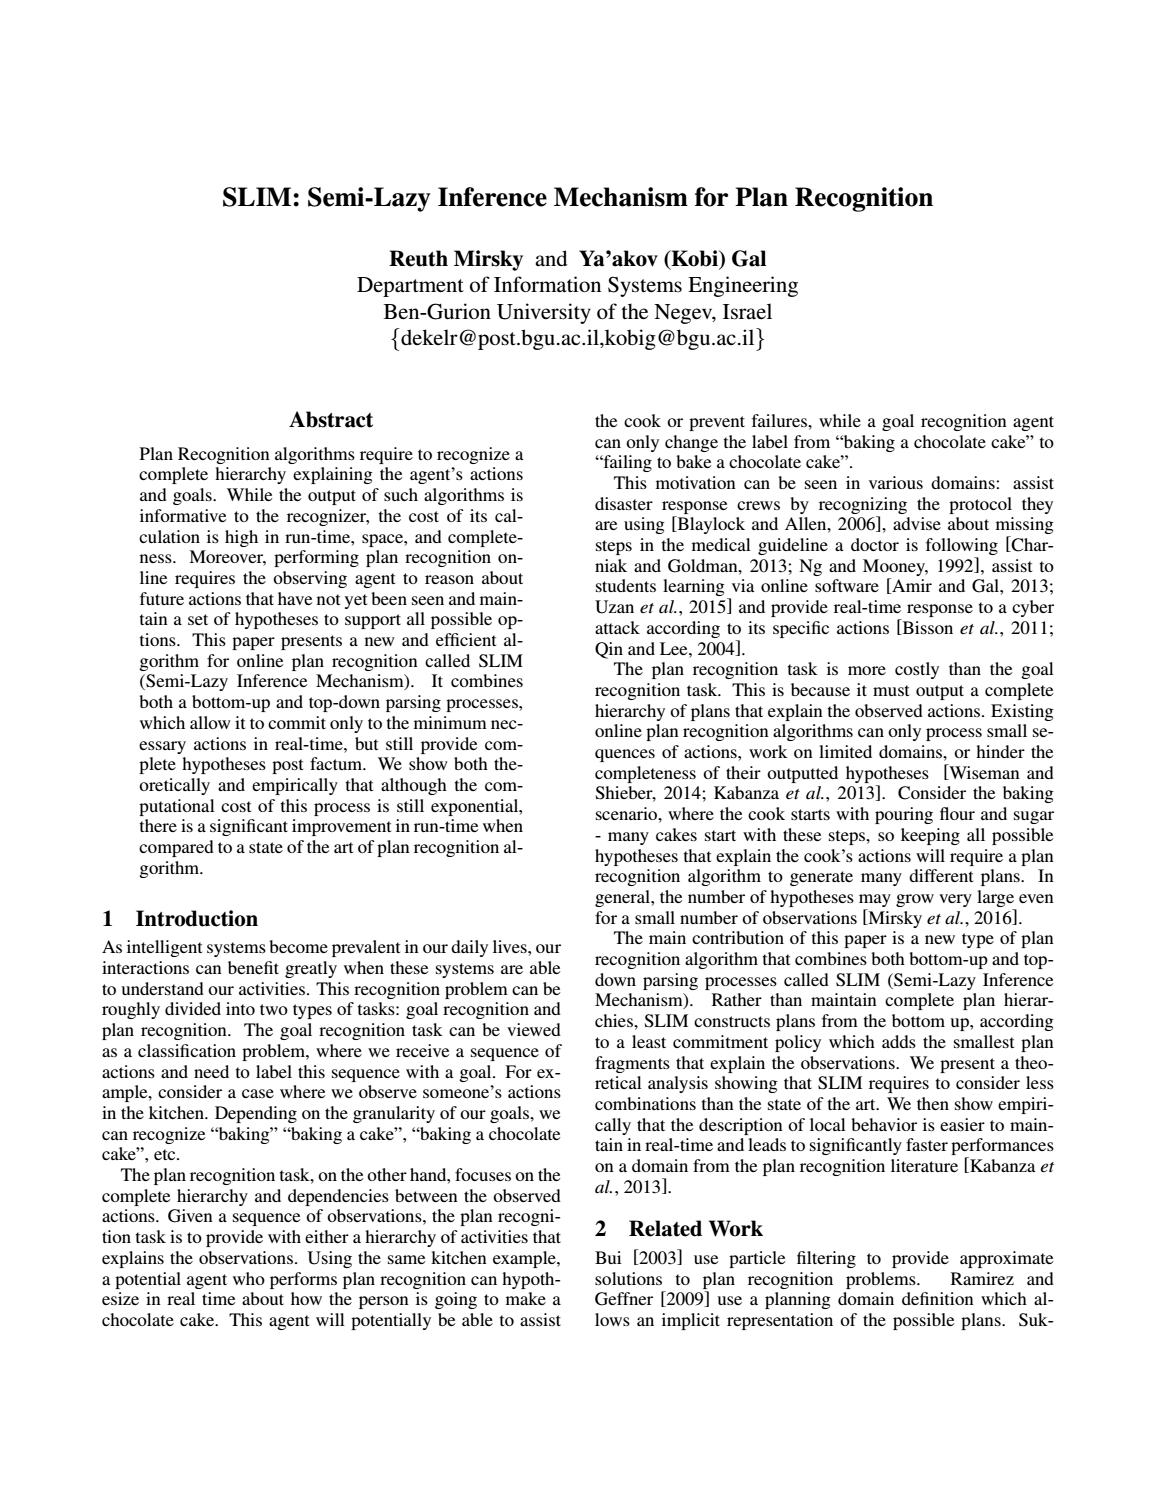 SLIM: Semi-Lazy Inference Mechanism for Plan Recognition by